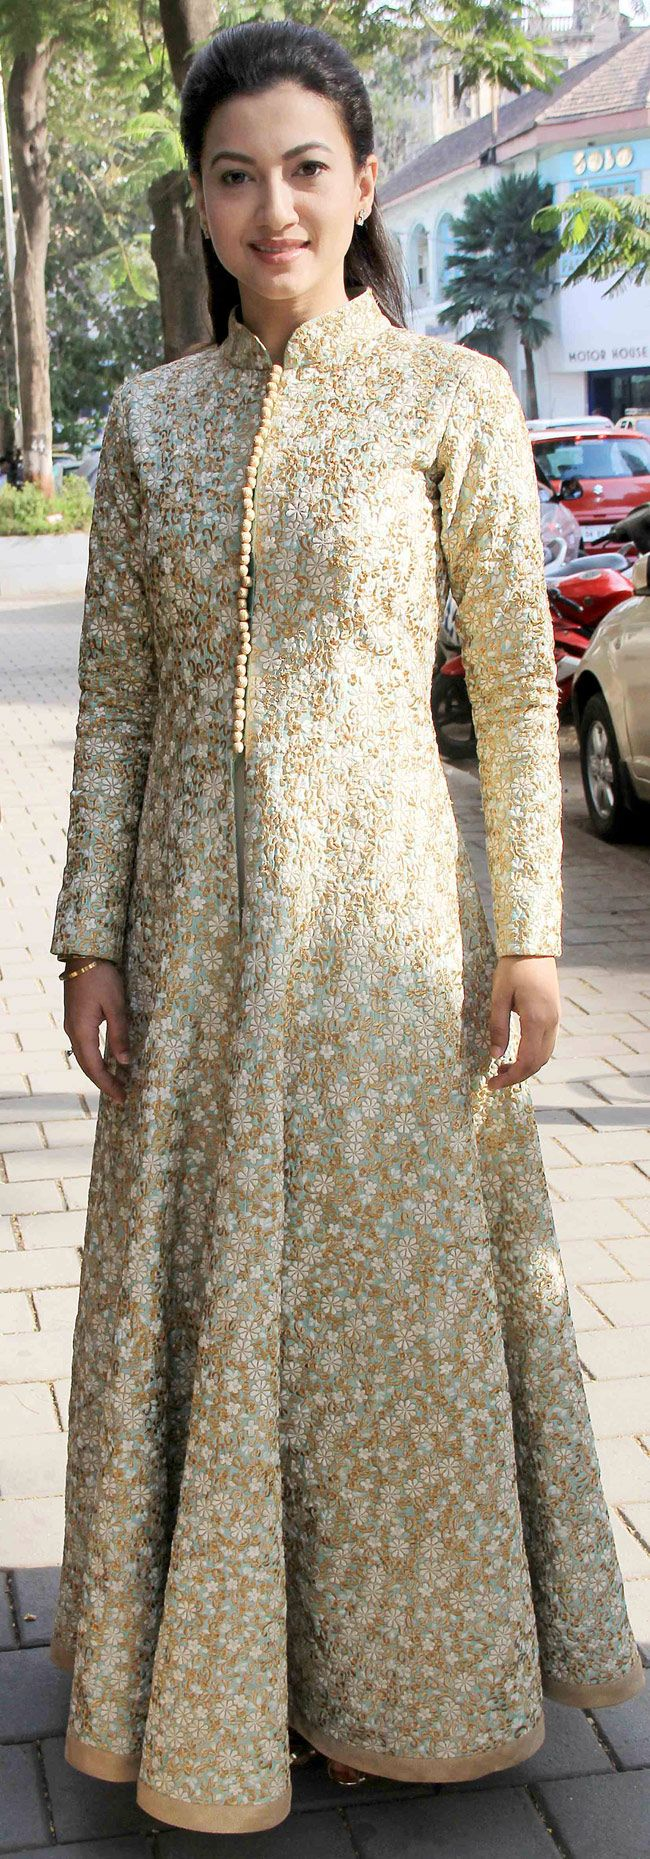 Gauahar (Gauhar) Khan at the festive collection preview of Hue store collection preview. #Bollywood #Fashion #Style #Beauty